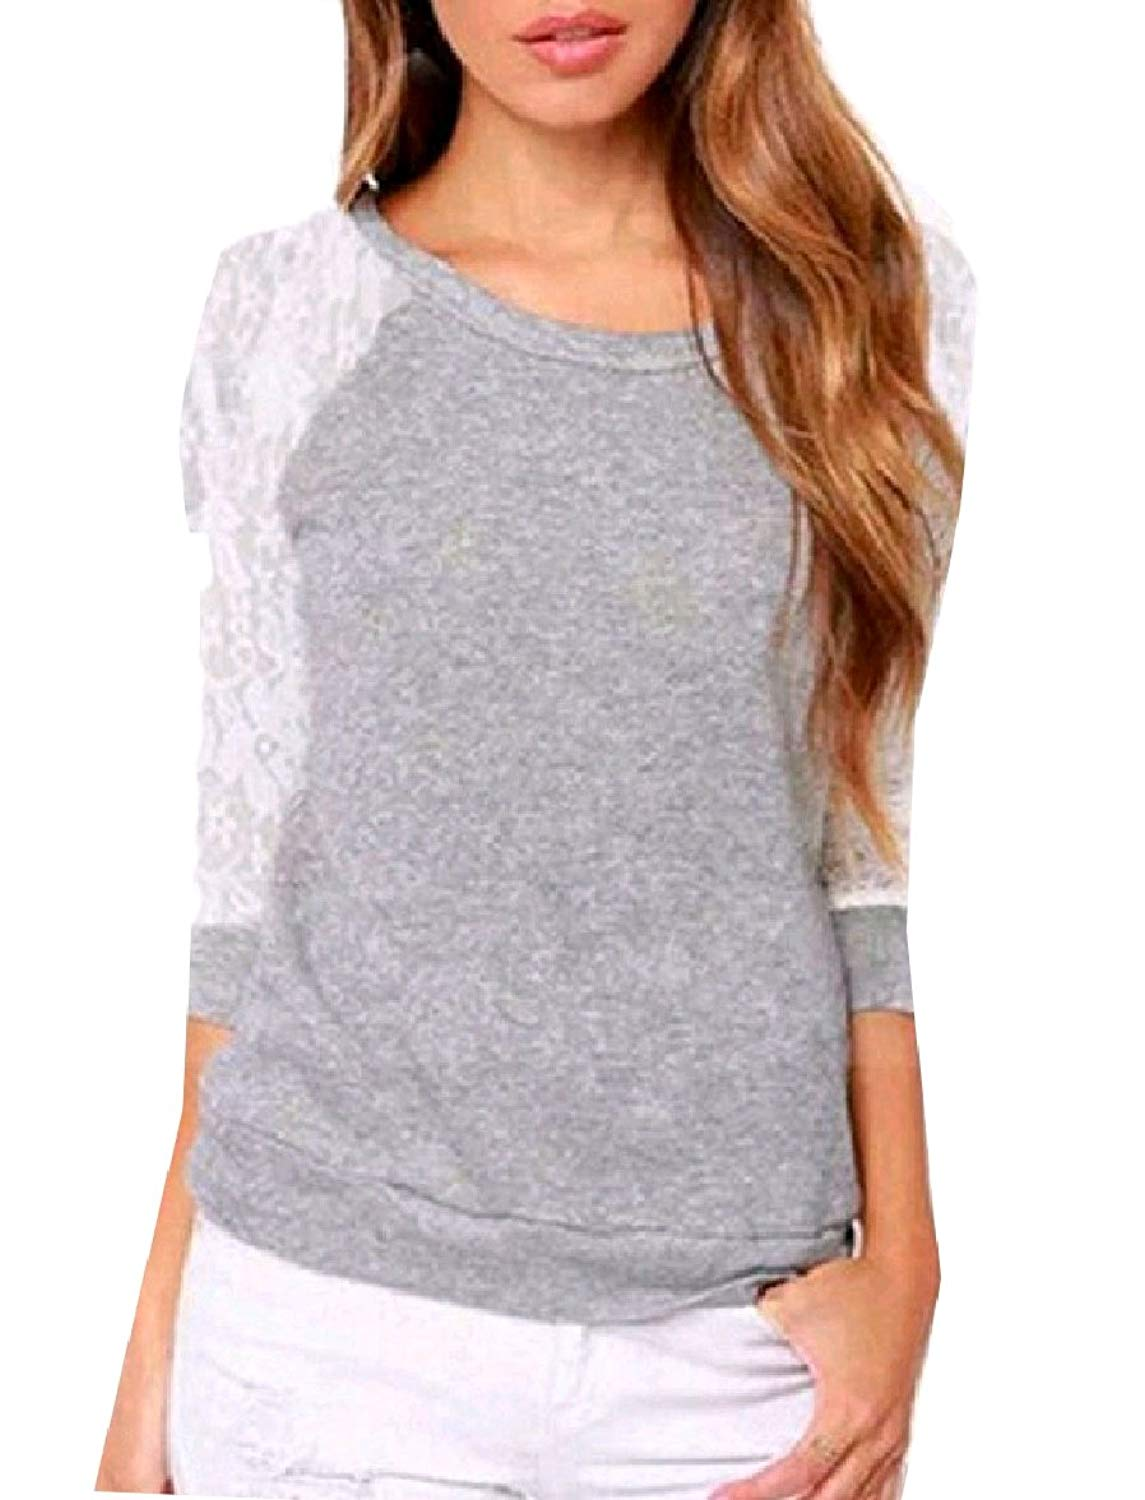 Zimaes-Women Fashionable Hollow Out Crew-Neck Lace Hem Line Long-Sleeve Pullover Tshirt Top